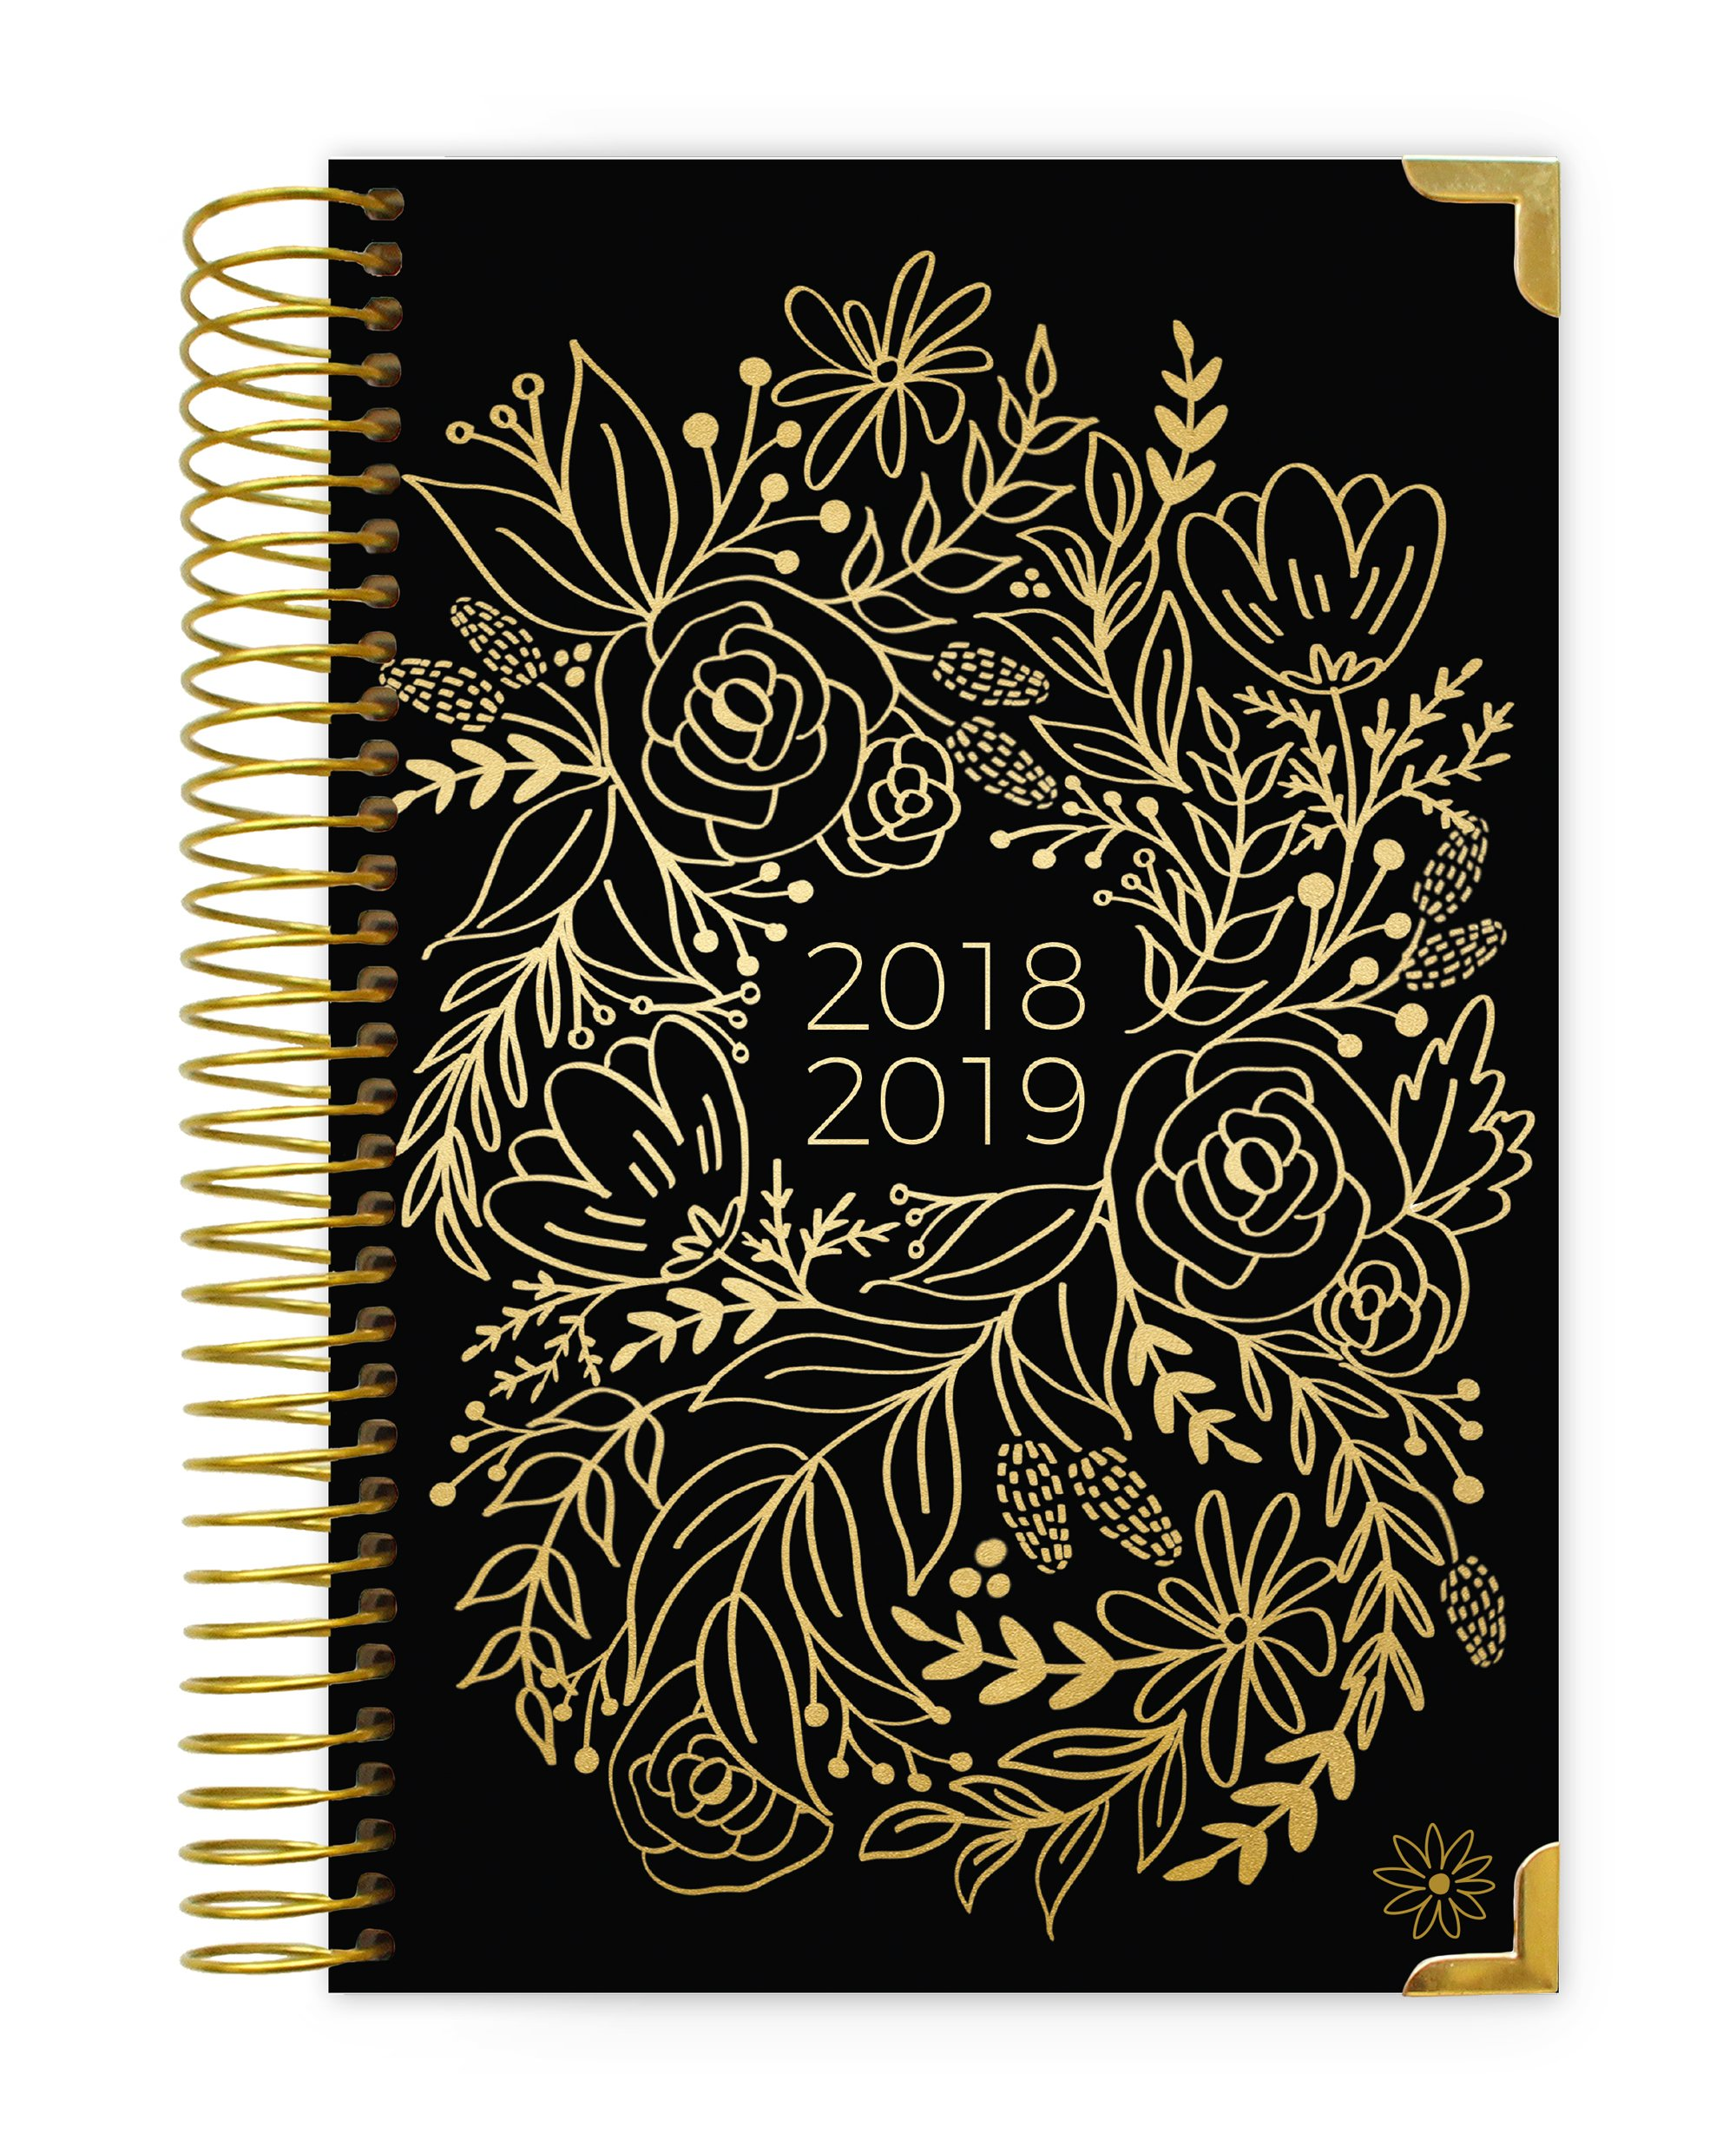 bloom daily planners 2018-2019 Academic Year Hard Cover Daily Planner - Monthly/Weekly Calendar Book - Inspirational Dated Agenda Organizer - (August 2018 - July 2019) - 6'' x 8.25'' - Gold Embroidery